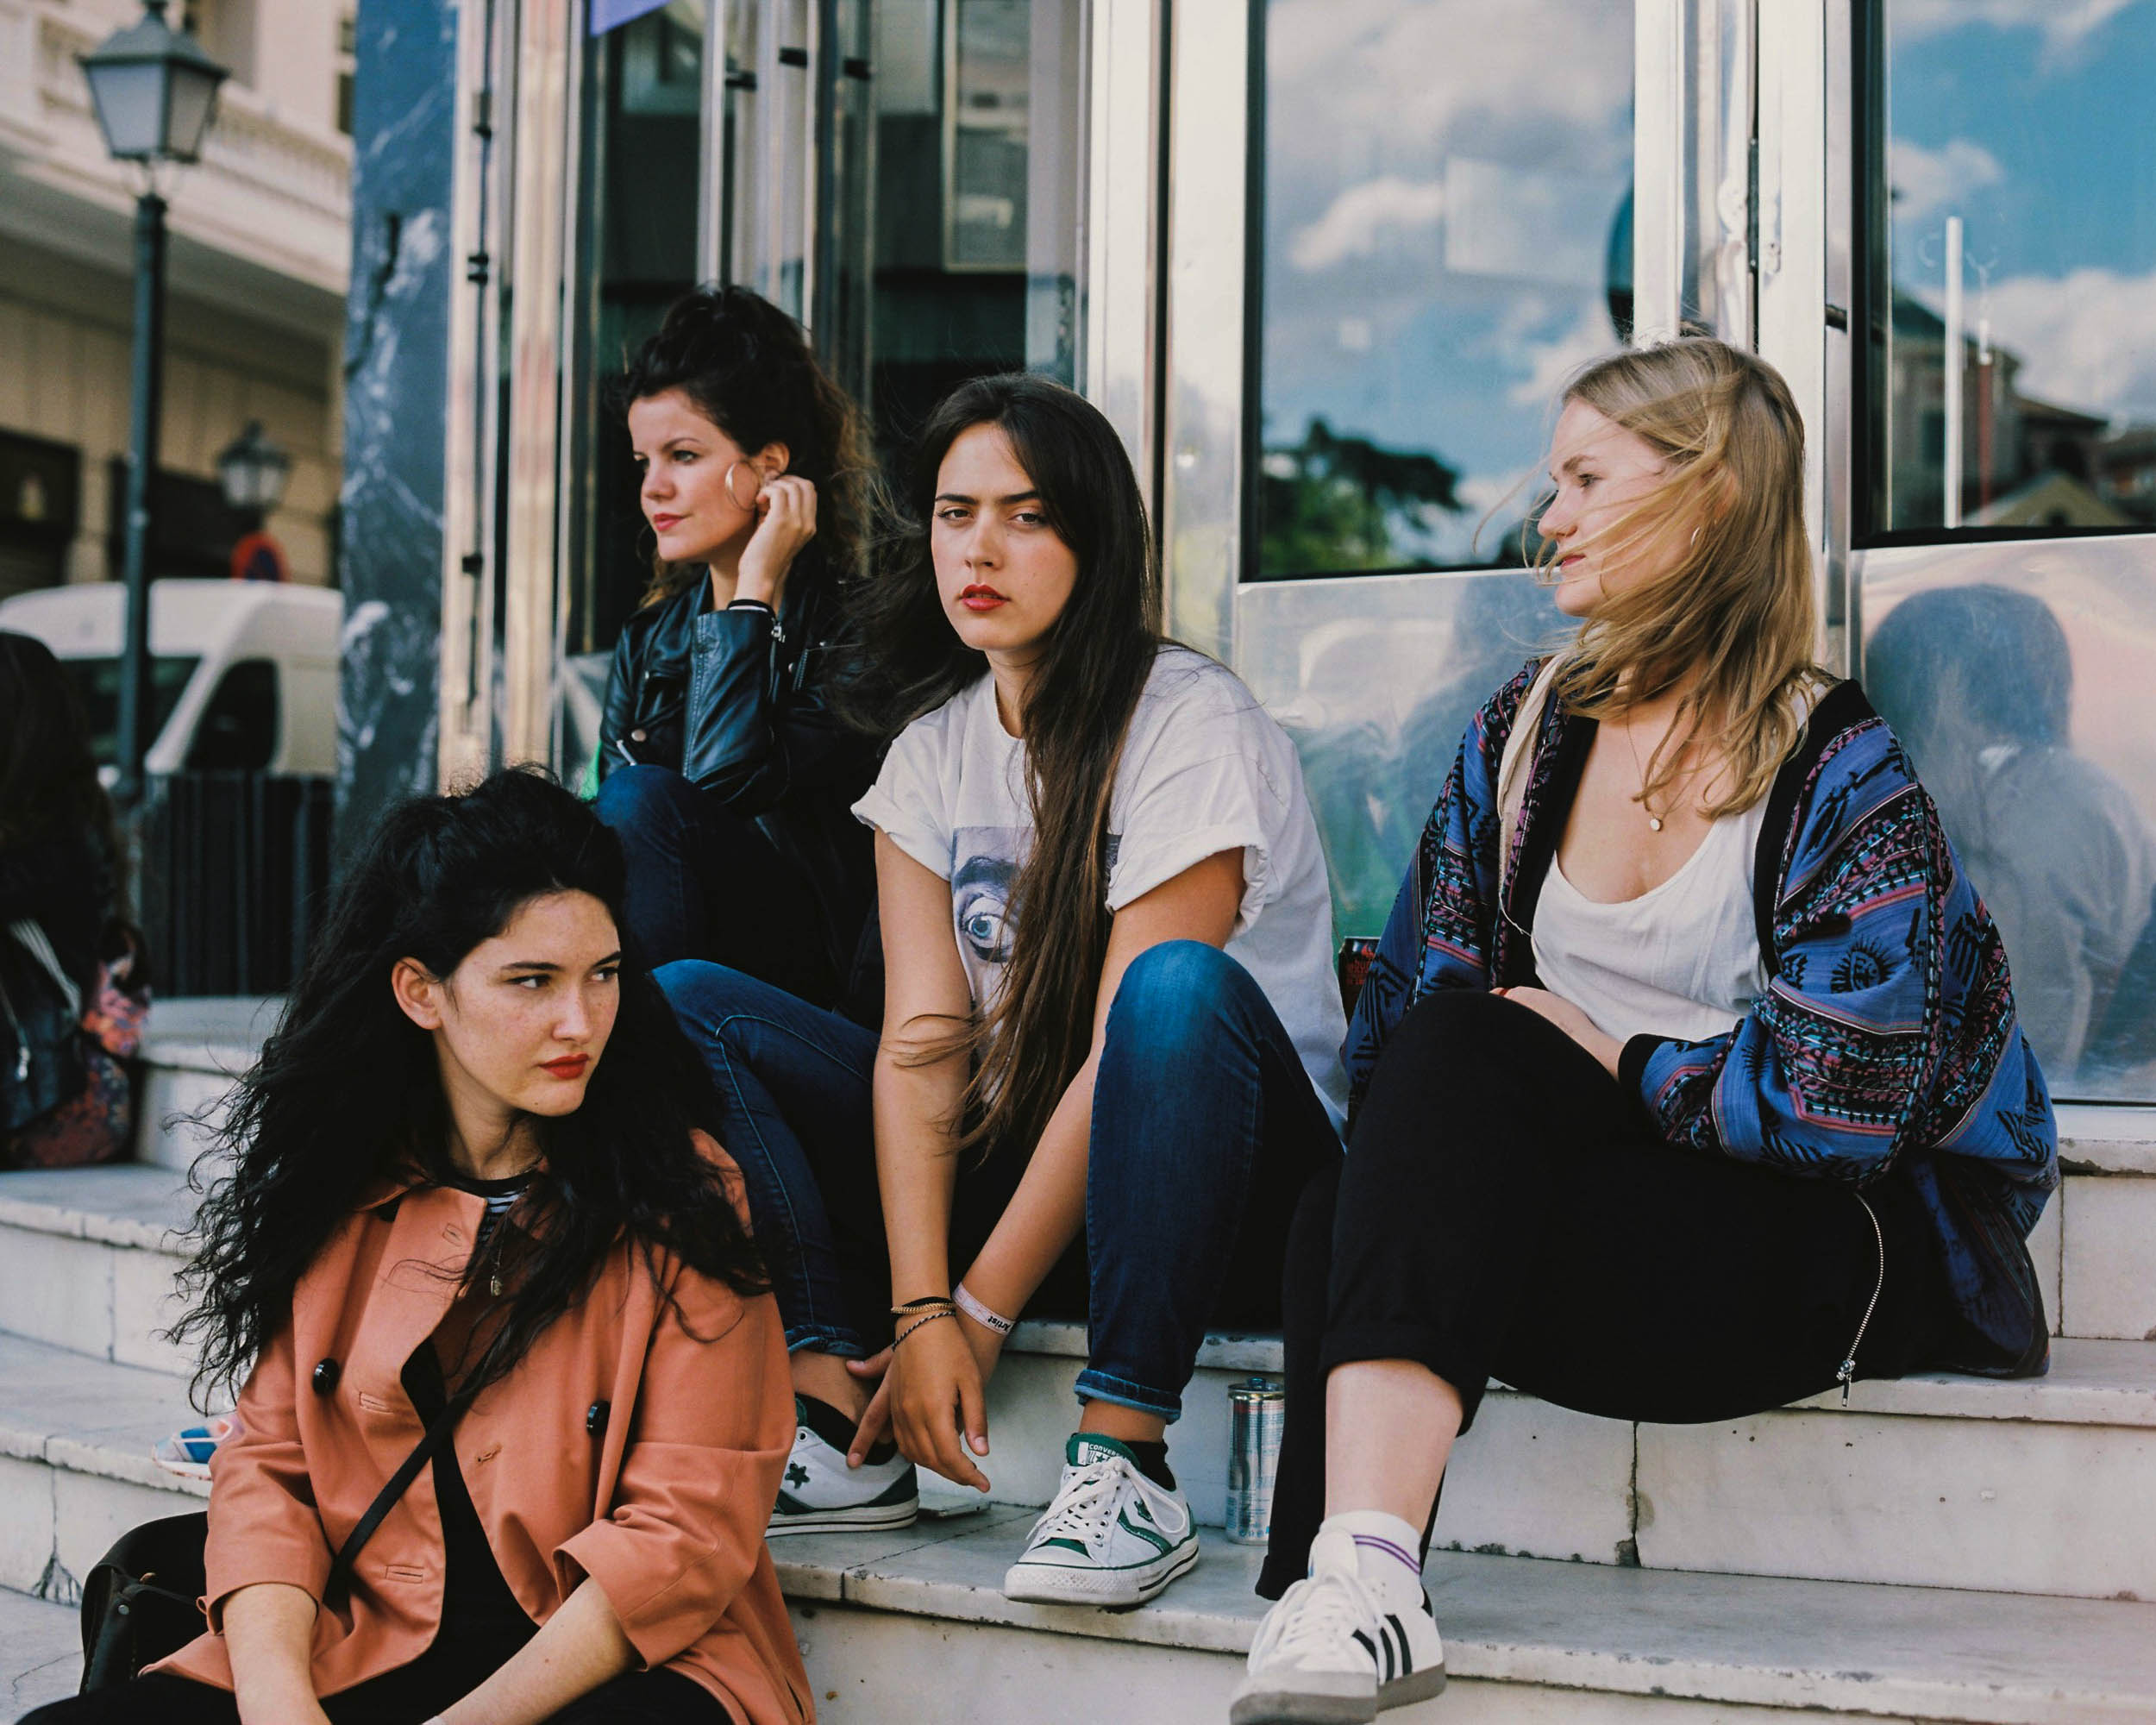 #editorial #fader #hinds #madrid #music #bands #portraits